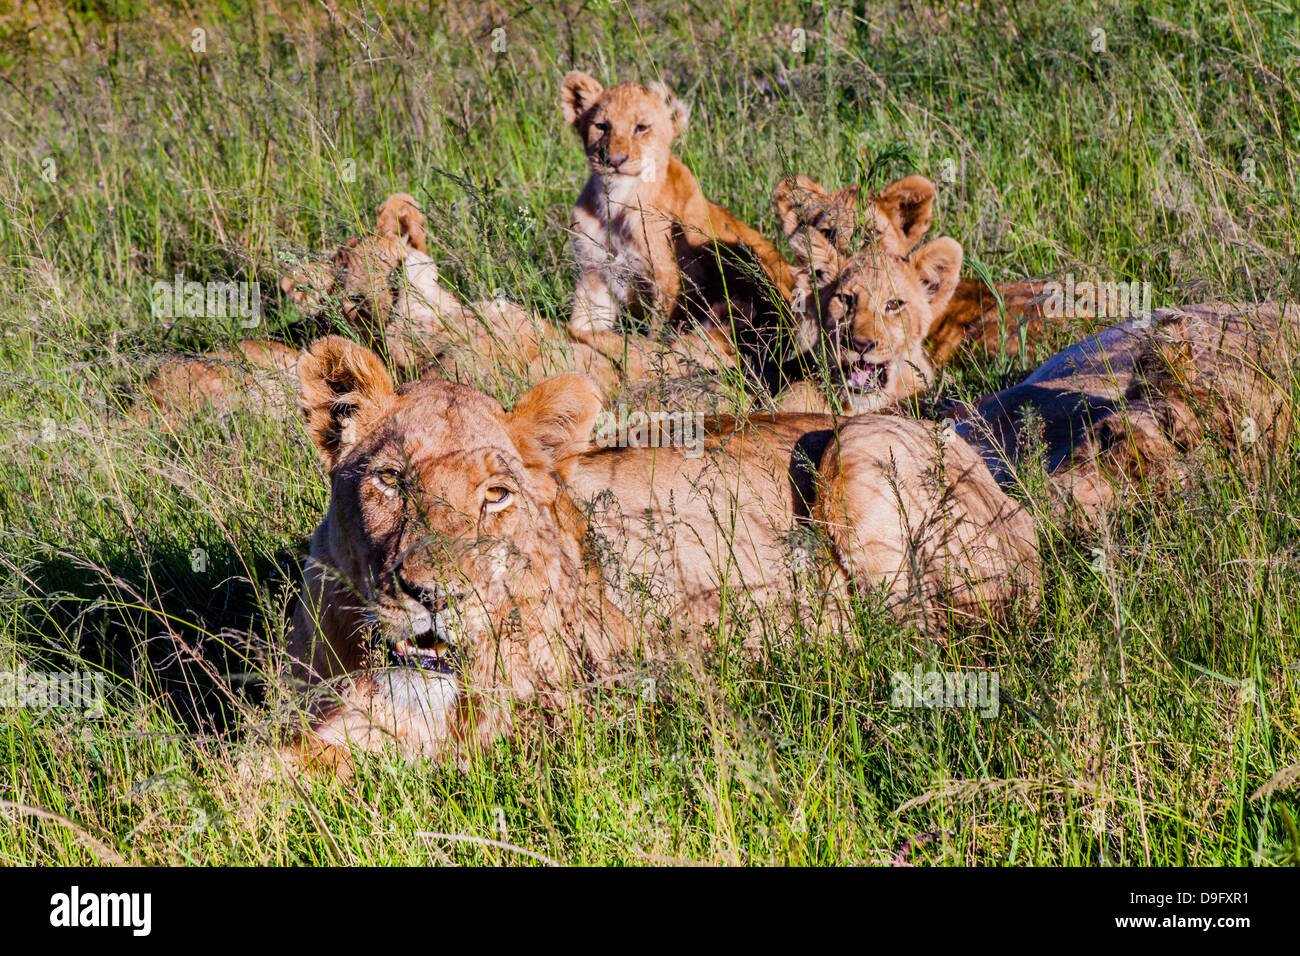 Lioness and her cubs in long grass, Western Cape, South Africa, Africa - Stock Image